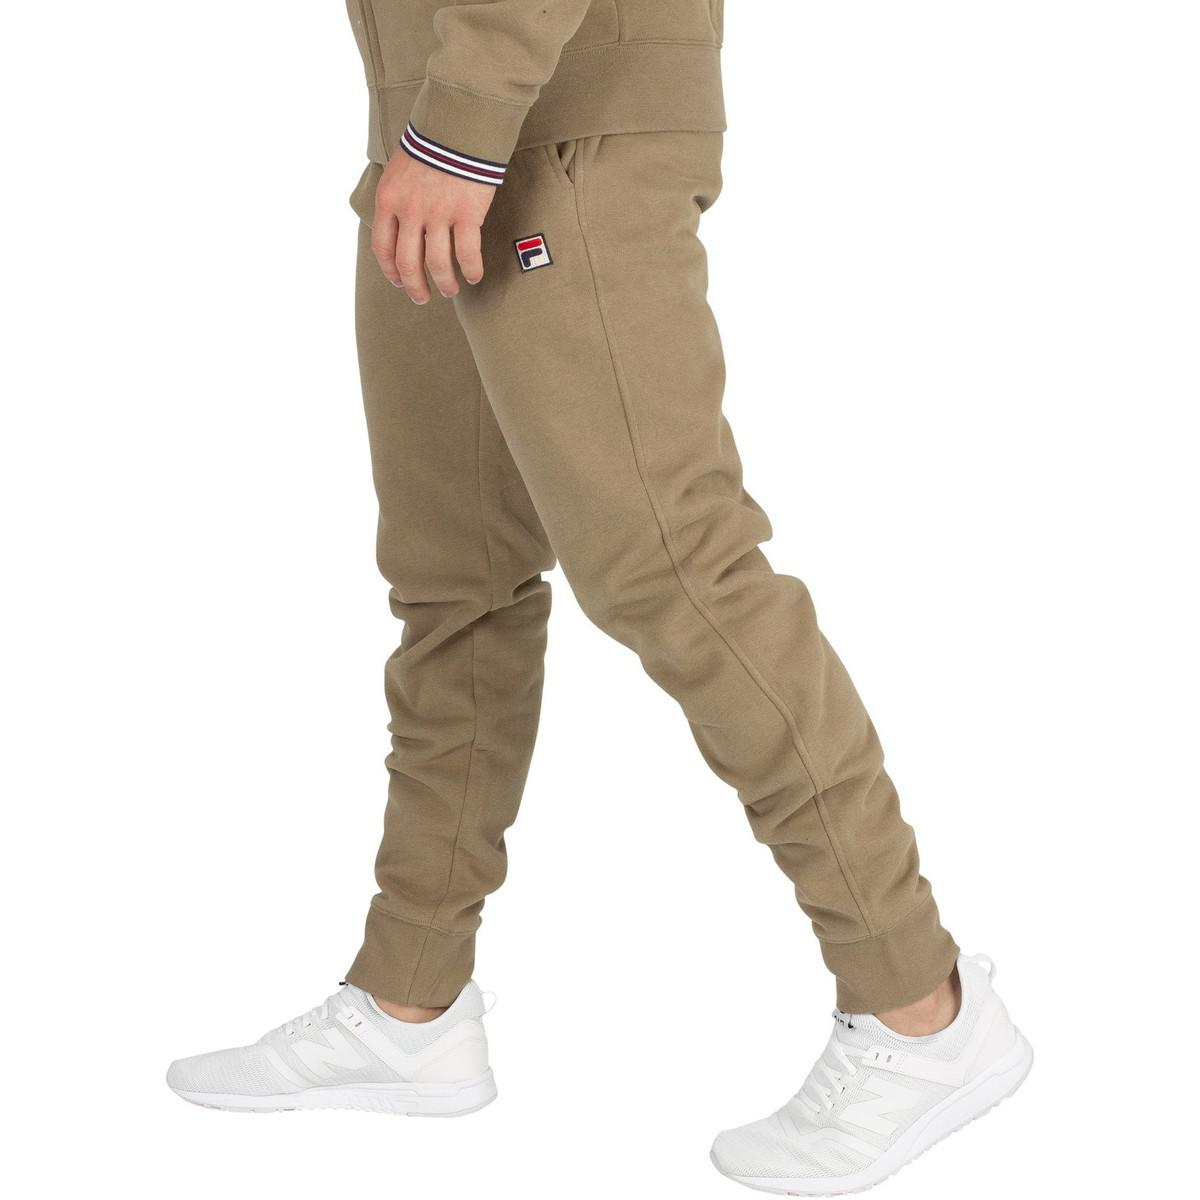 a6c640f465e8 Fila Men s Visconti Joggers